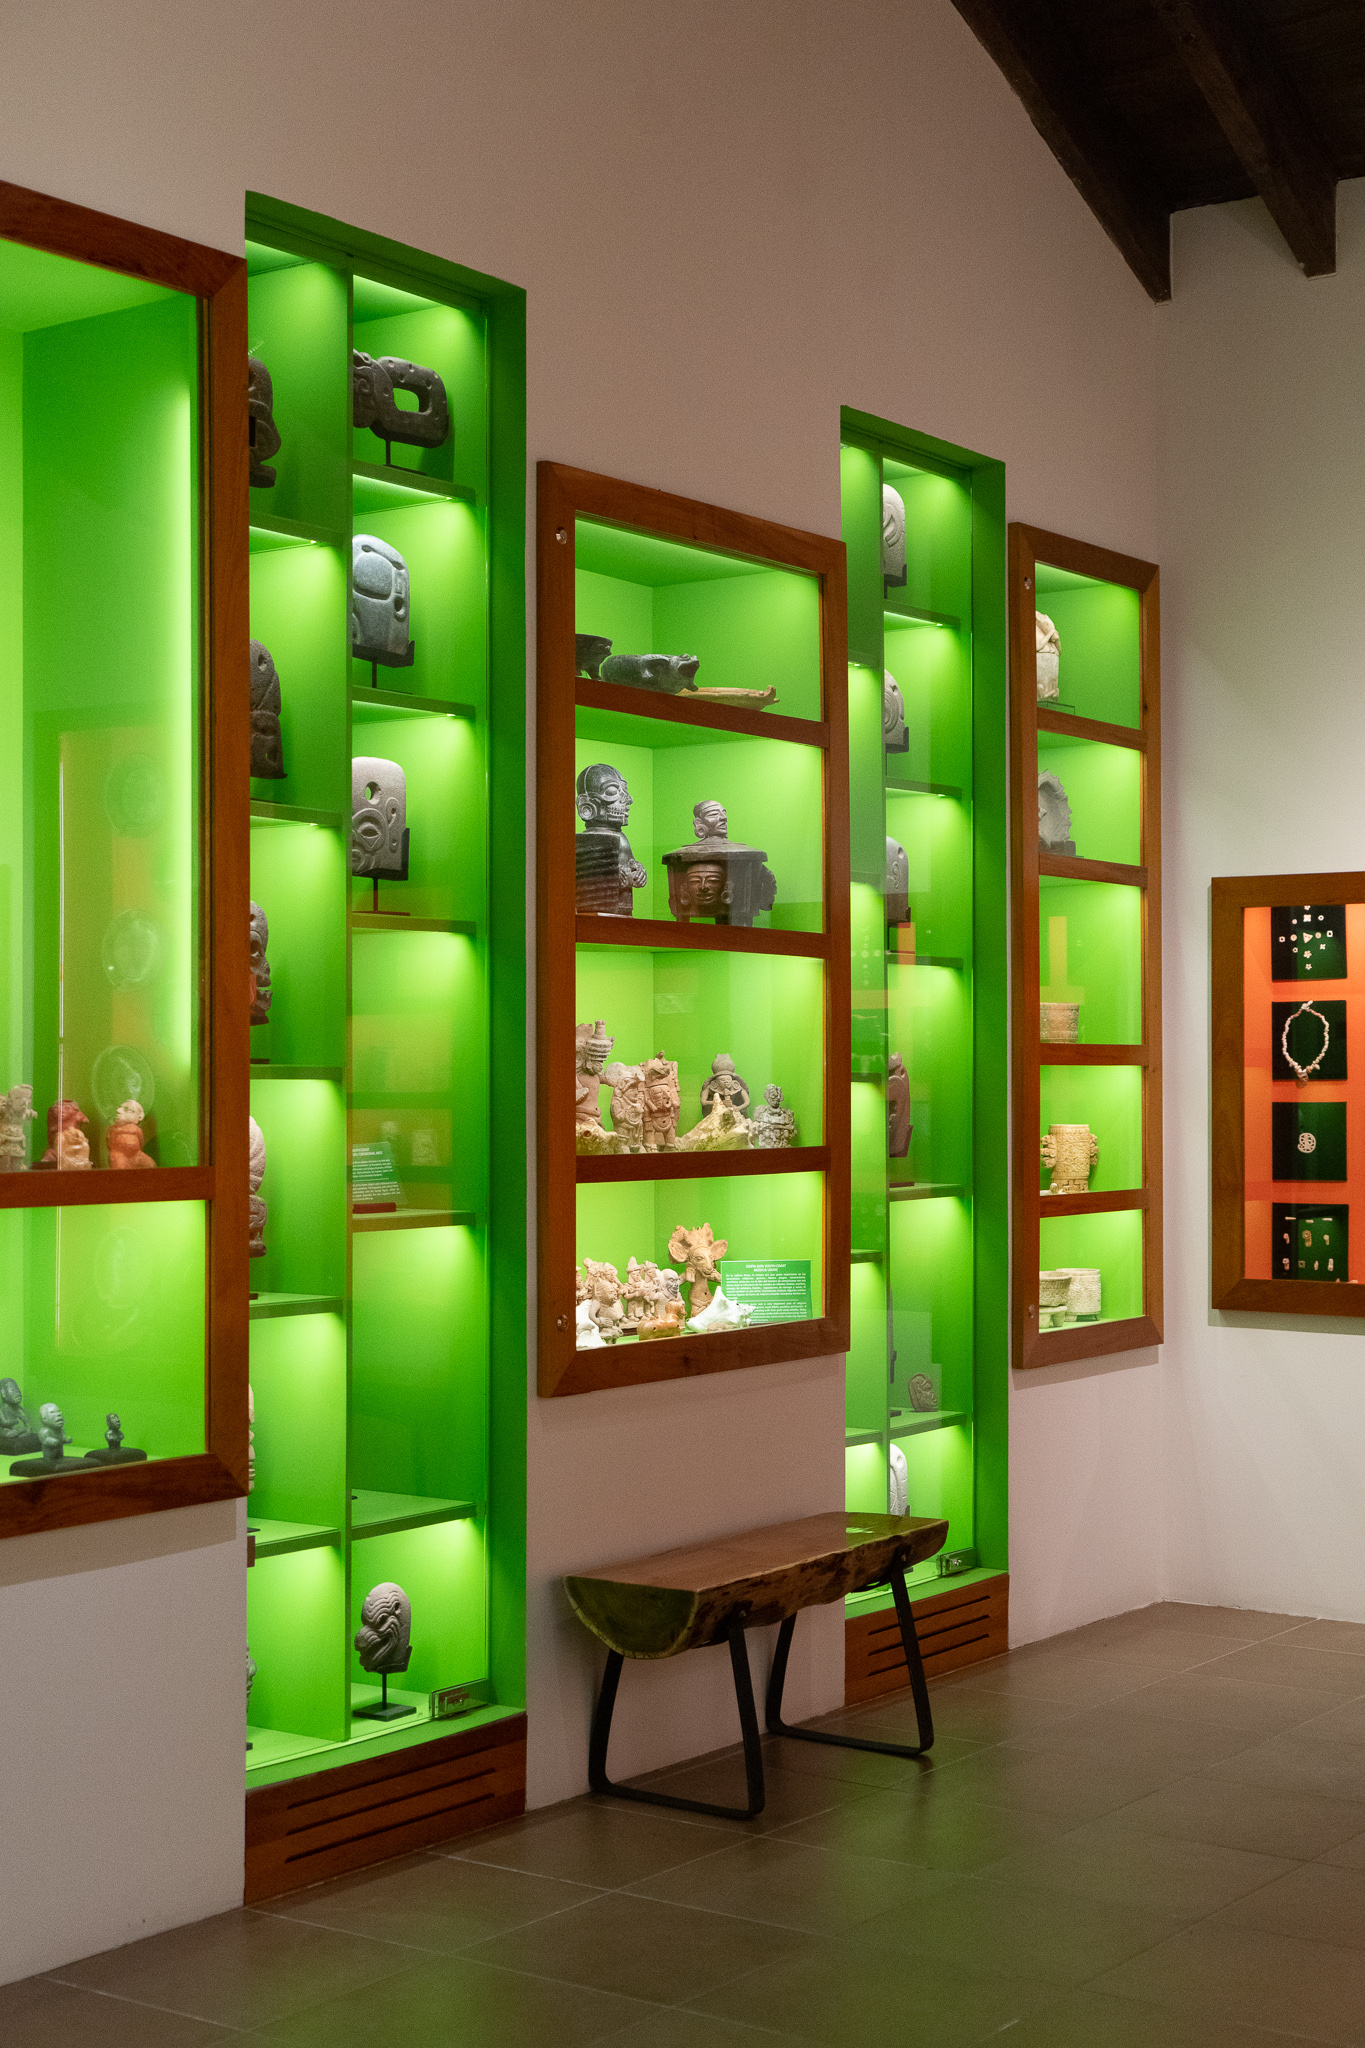 The property has its own private museum filled with Mayan artifacts from the surrounding region.